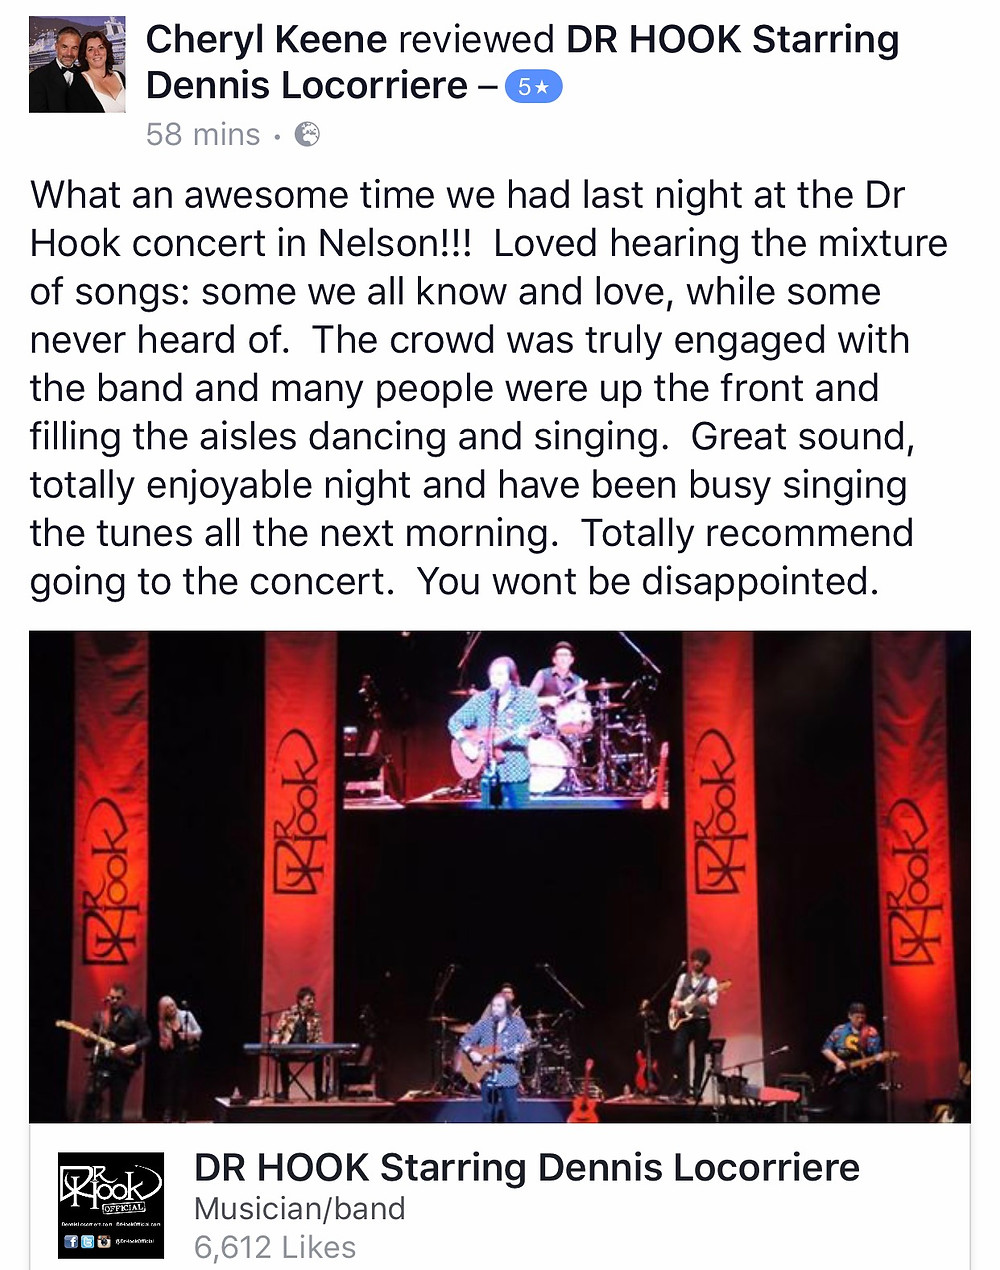 Dr Hook Starring Dennis Locorriere 5 Star Review | Nelson, New Zealand | 18.05.17